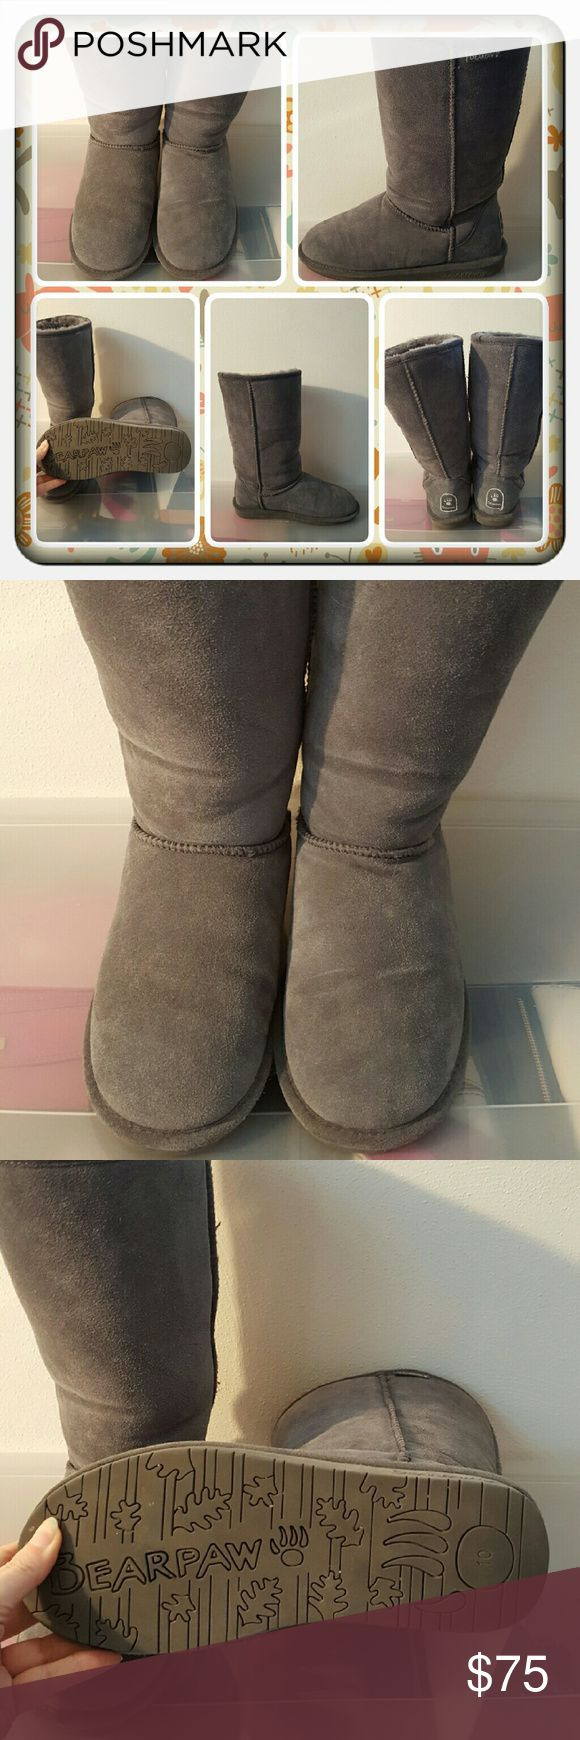 ❤ EUC Woman's Tall Grey Boots Size 10 M ❤ Woman's Tall Grey Boots By Bearpaw Size 10 Medium. I Wore 2-3 Times Excellent Condition No Wear On Heels Or Damage I'm Aware Of. These Are Perfect For Fall & Winter Super Cute 🚫 PAYPAL 🚫 TRADES 🚫 LOWBALLING YOU'LL BE BLOCKED ❤ BearPaw Shoes Winter & Rain Boots